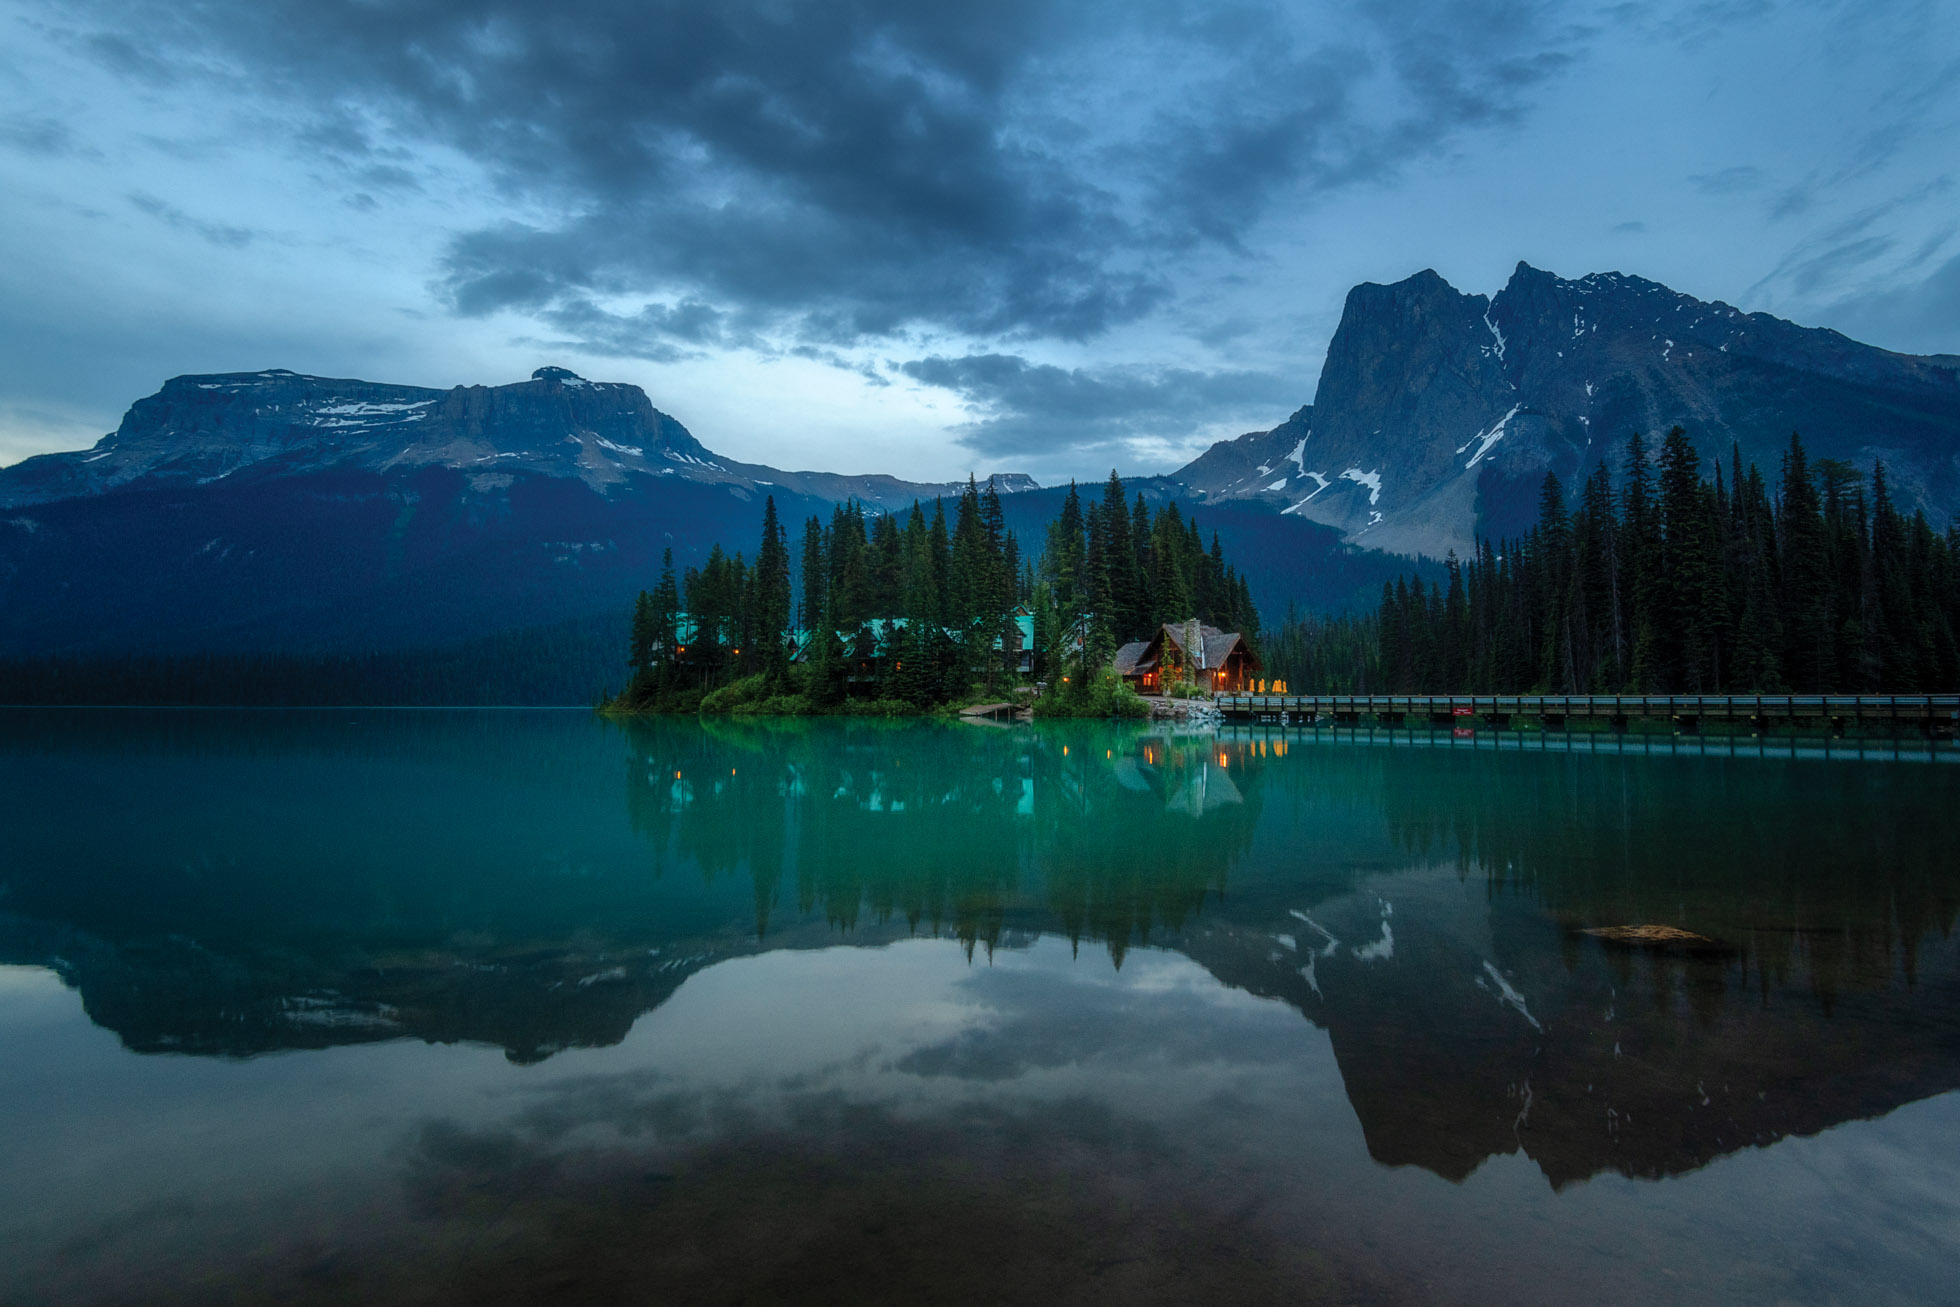 June brought me back to the Canadian Rockies with my girlfriends where I finally got to shoot Emerald Lake. This image was selected as a finalist in Click & Company's 2018 Voice Collection.